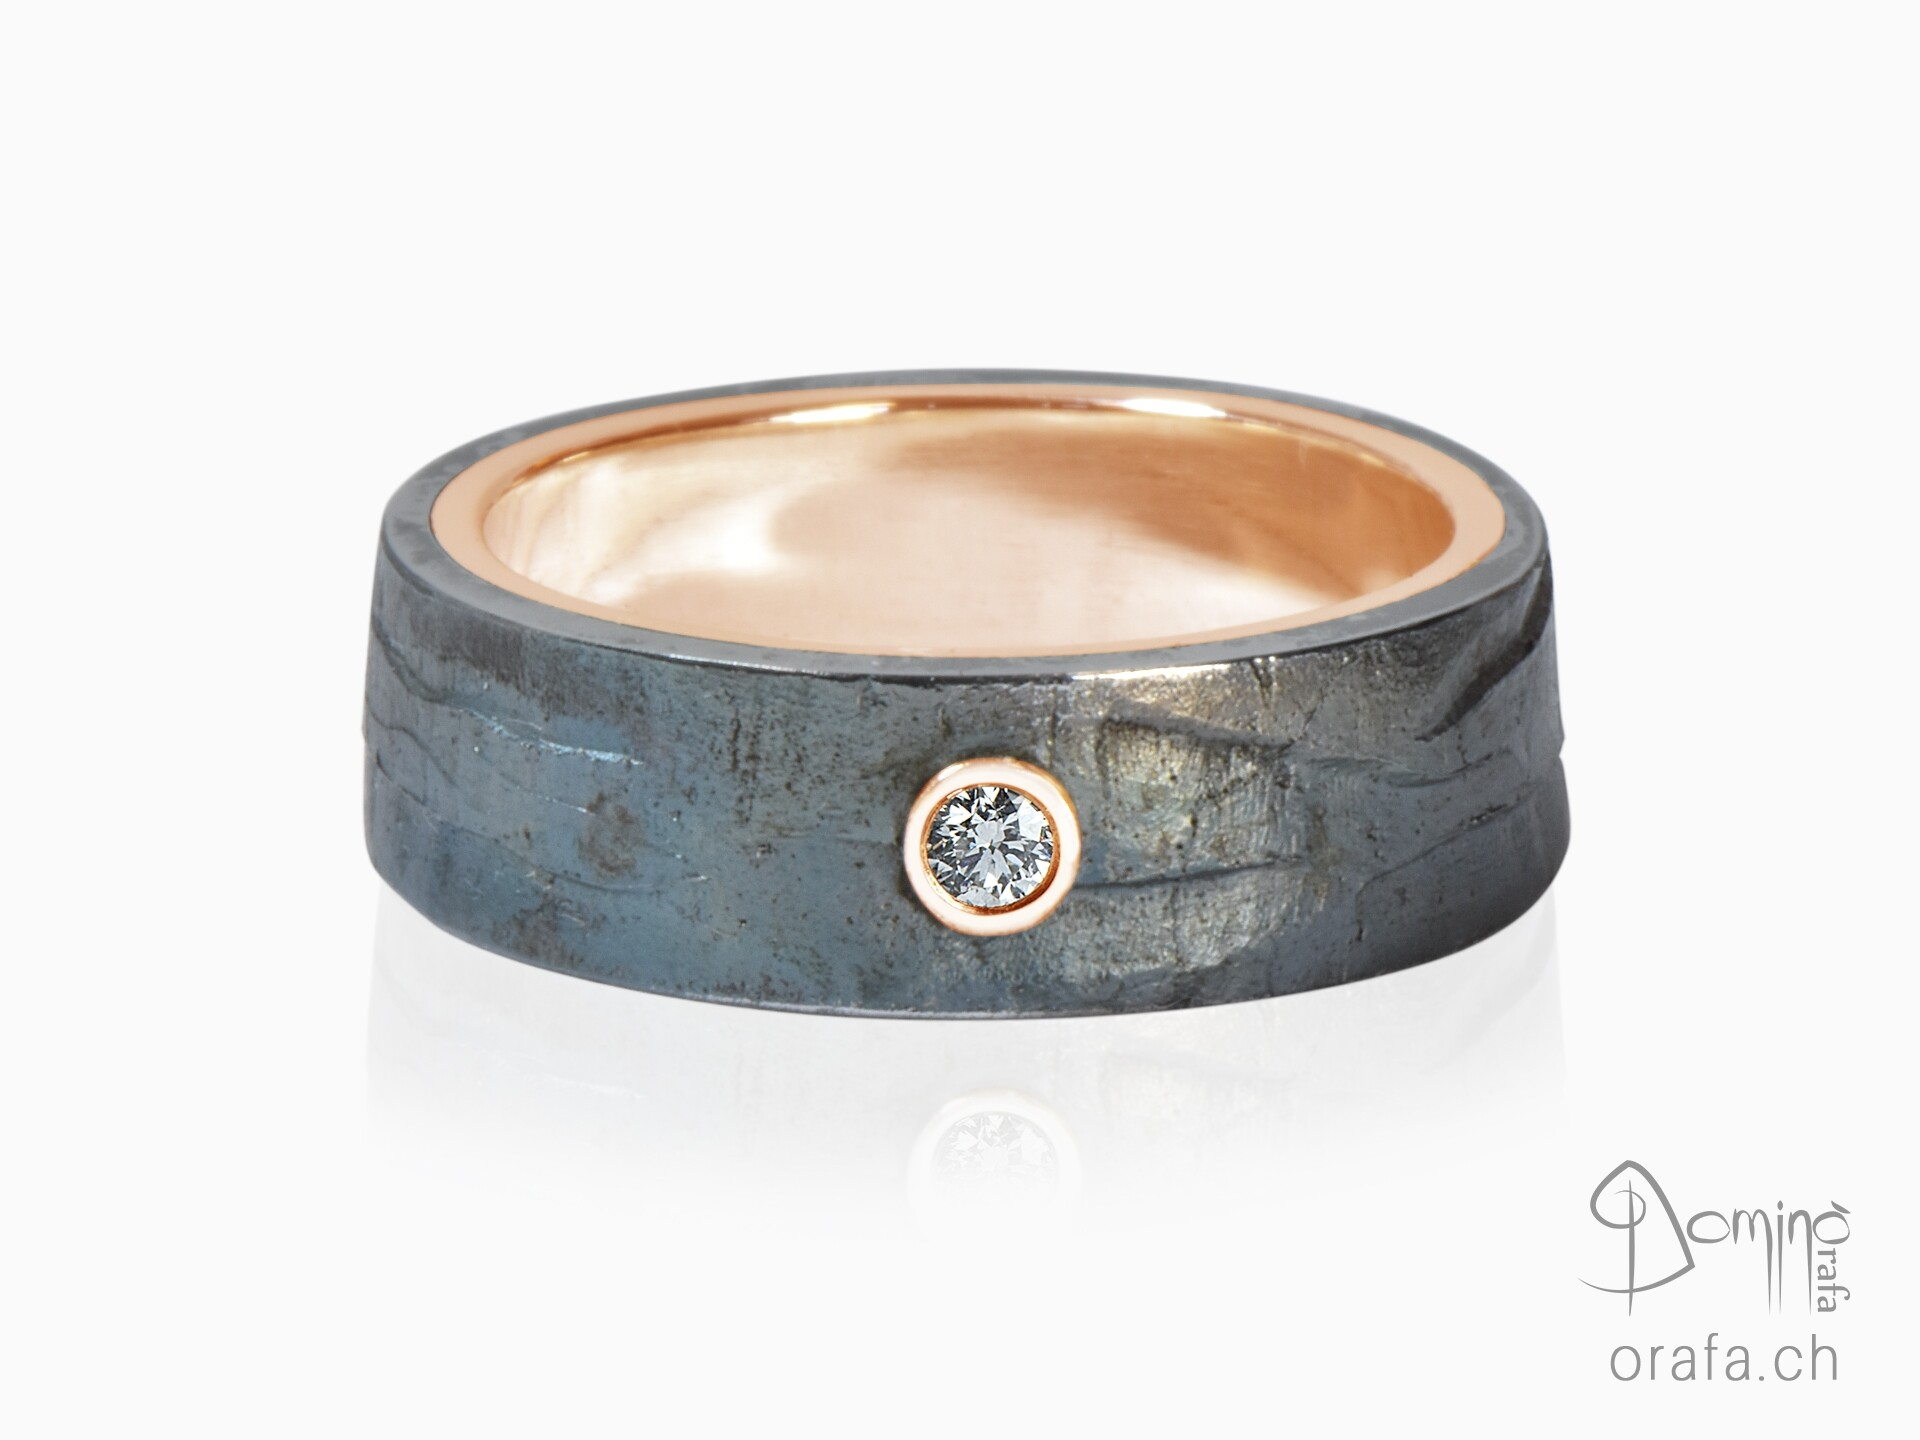 Precious Iron ring with diamond